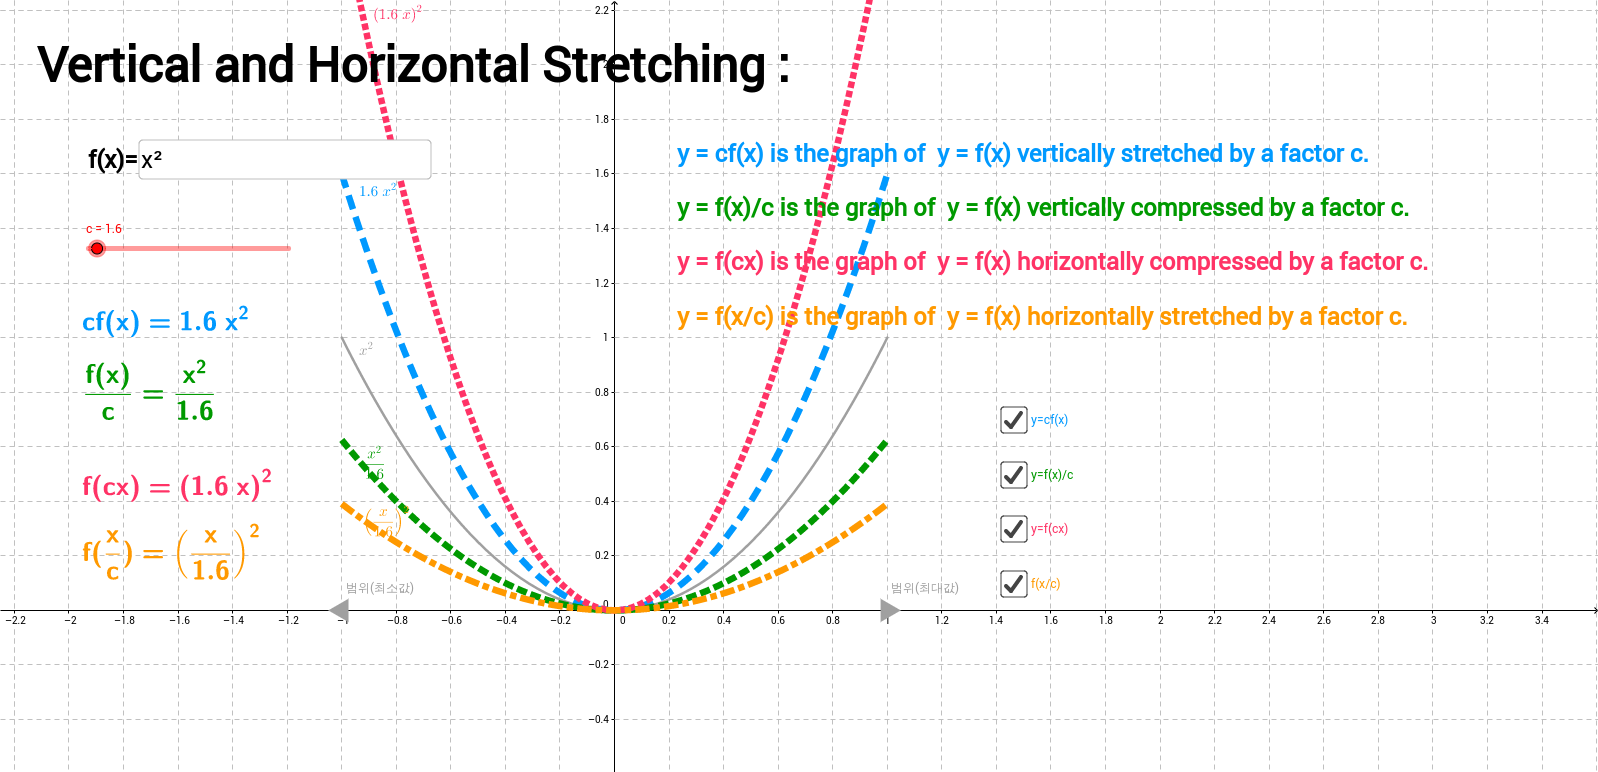 Vertical-and-Horizontal-Stretching